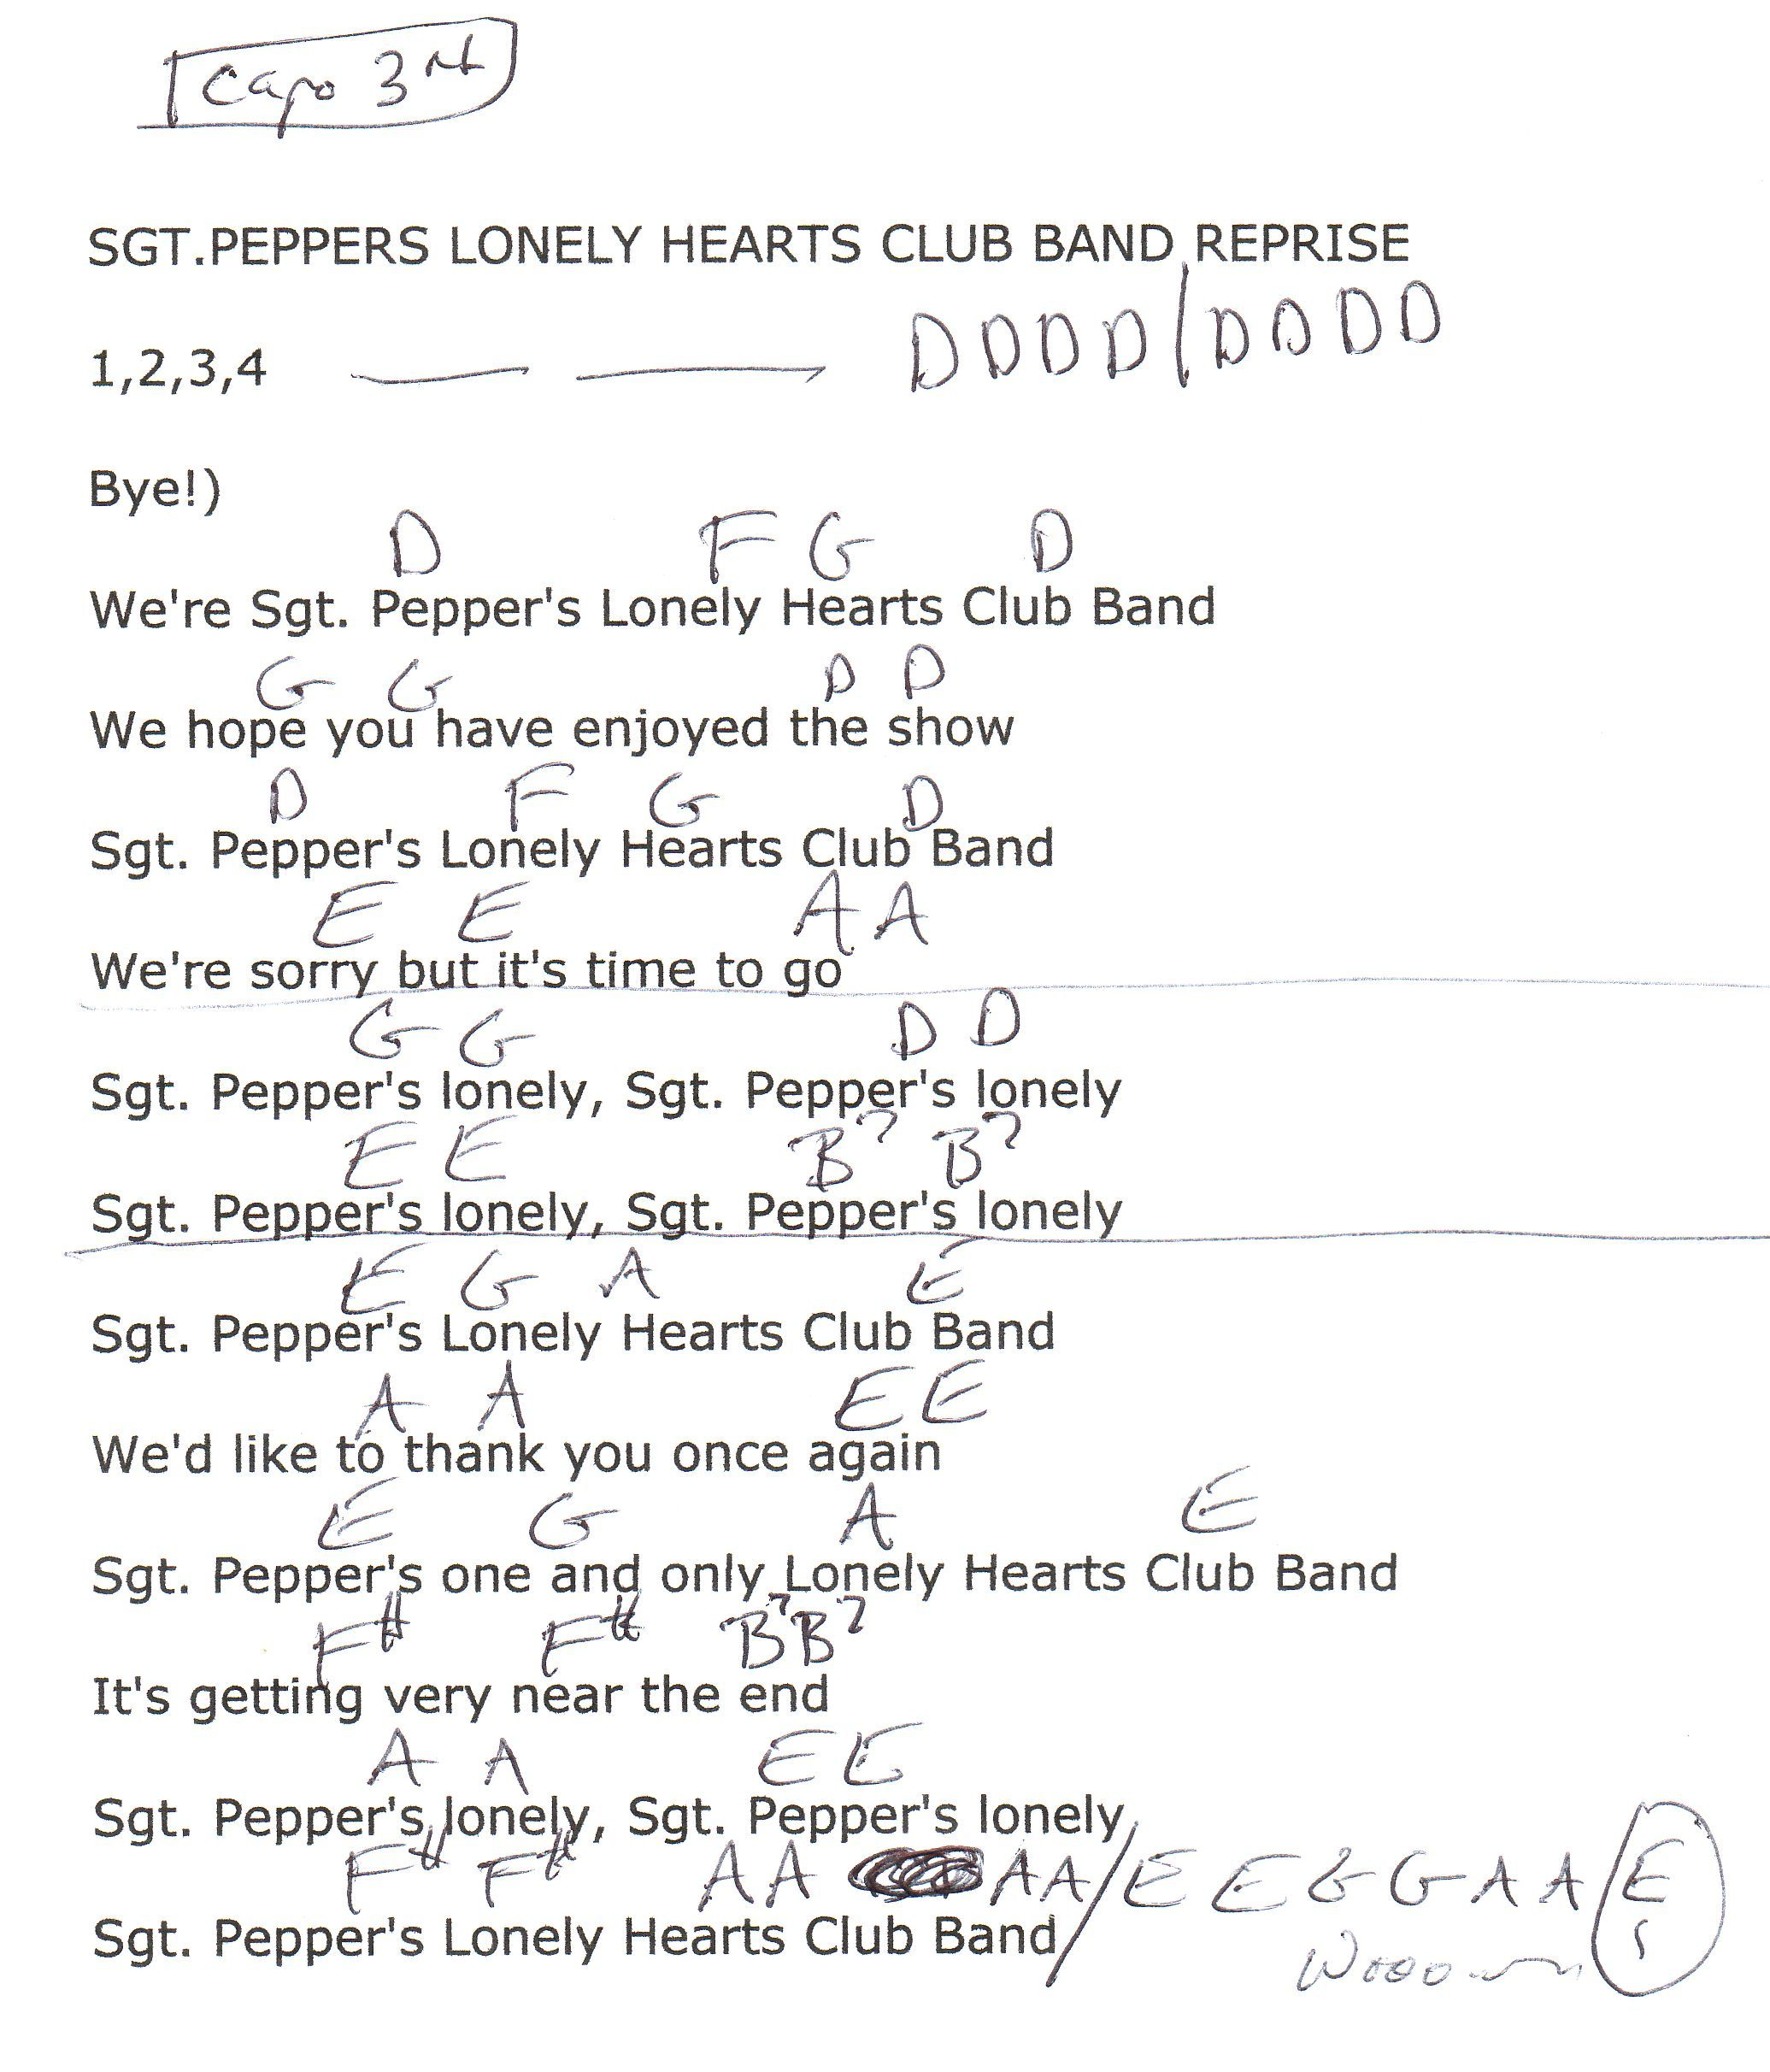 Sgt Peppers Lonely Hearts Club Band Reprise The Beatles Guitar